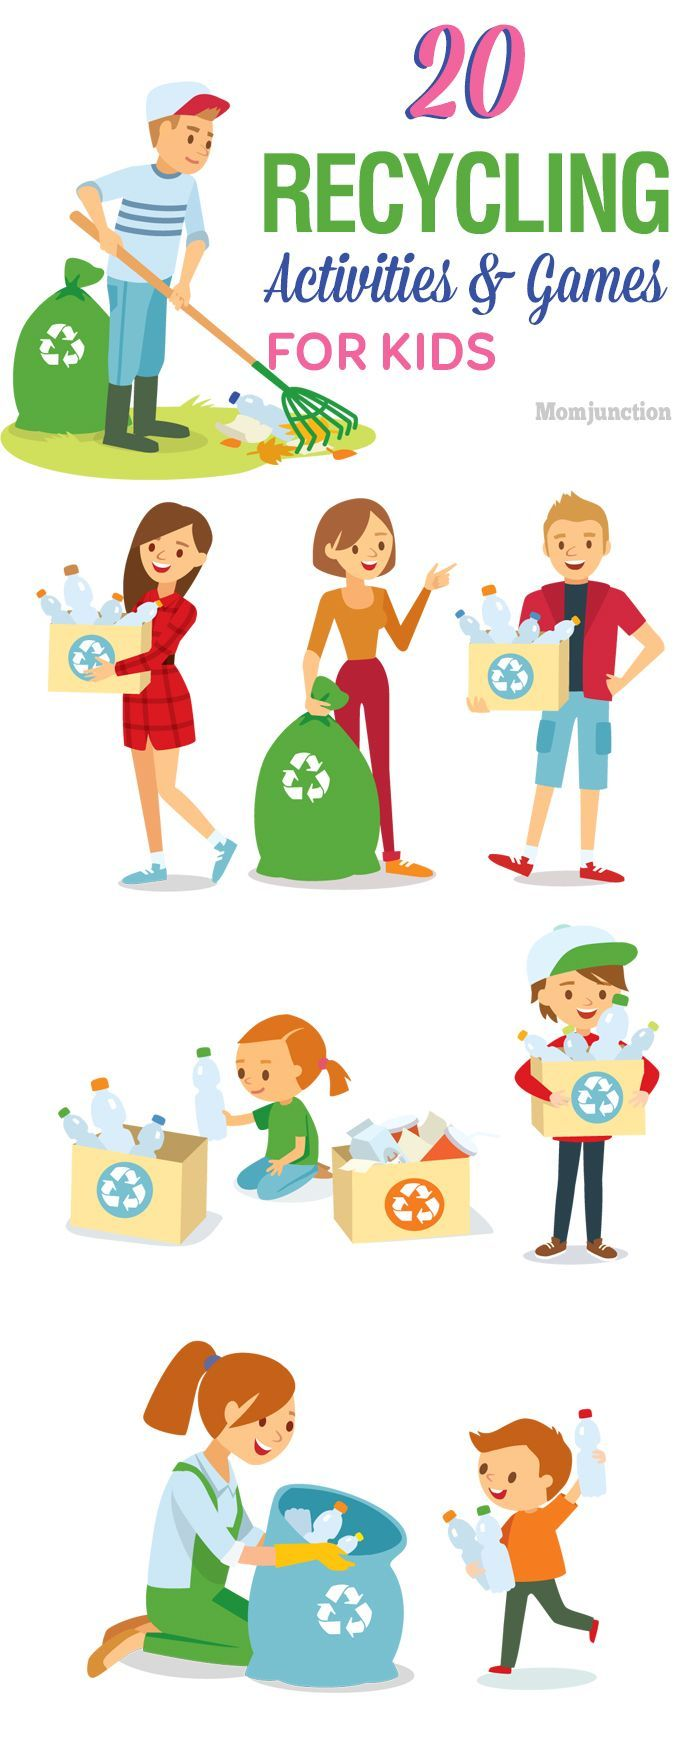 20 Recycling Activities And Games For Kids - Great for Earth Day